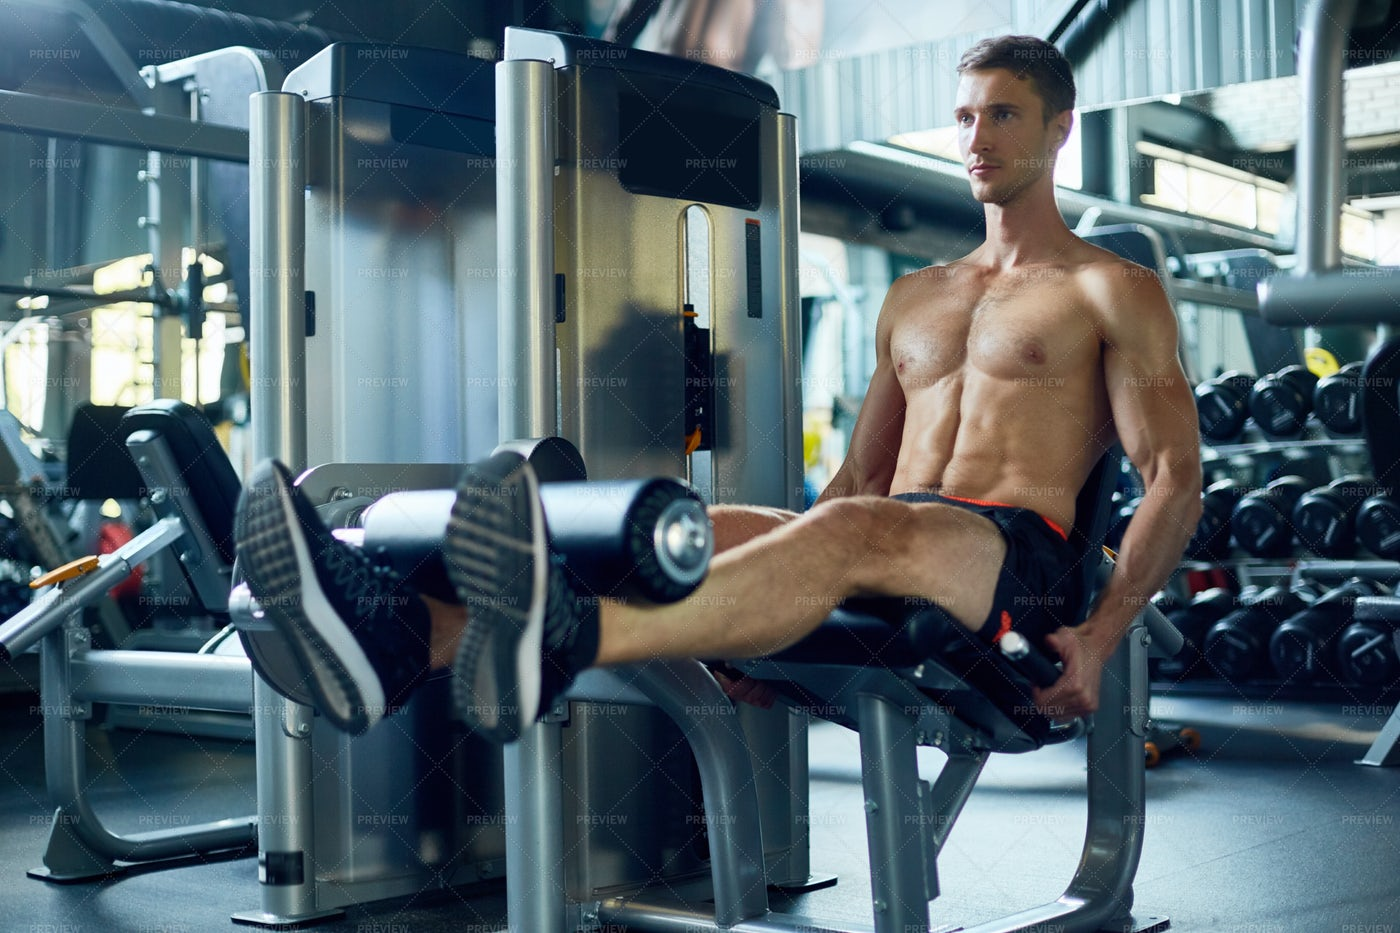 Exercising On Leg Extension Machine: Stock Photos